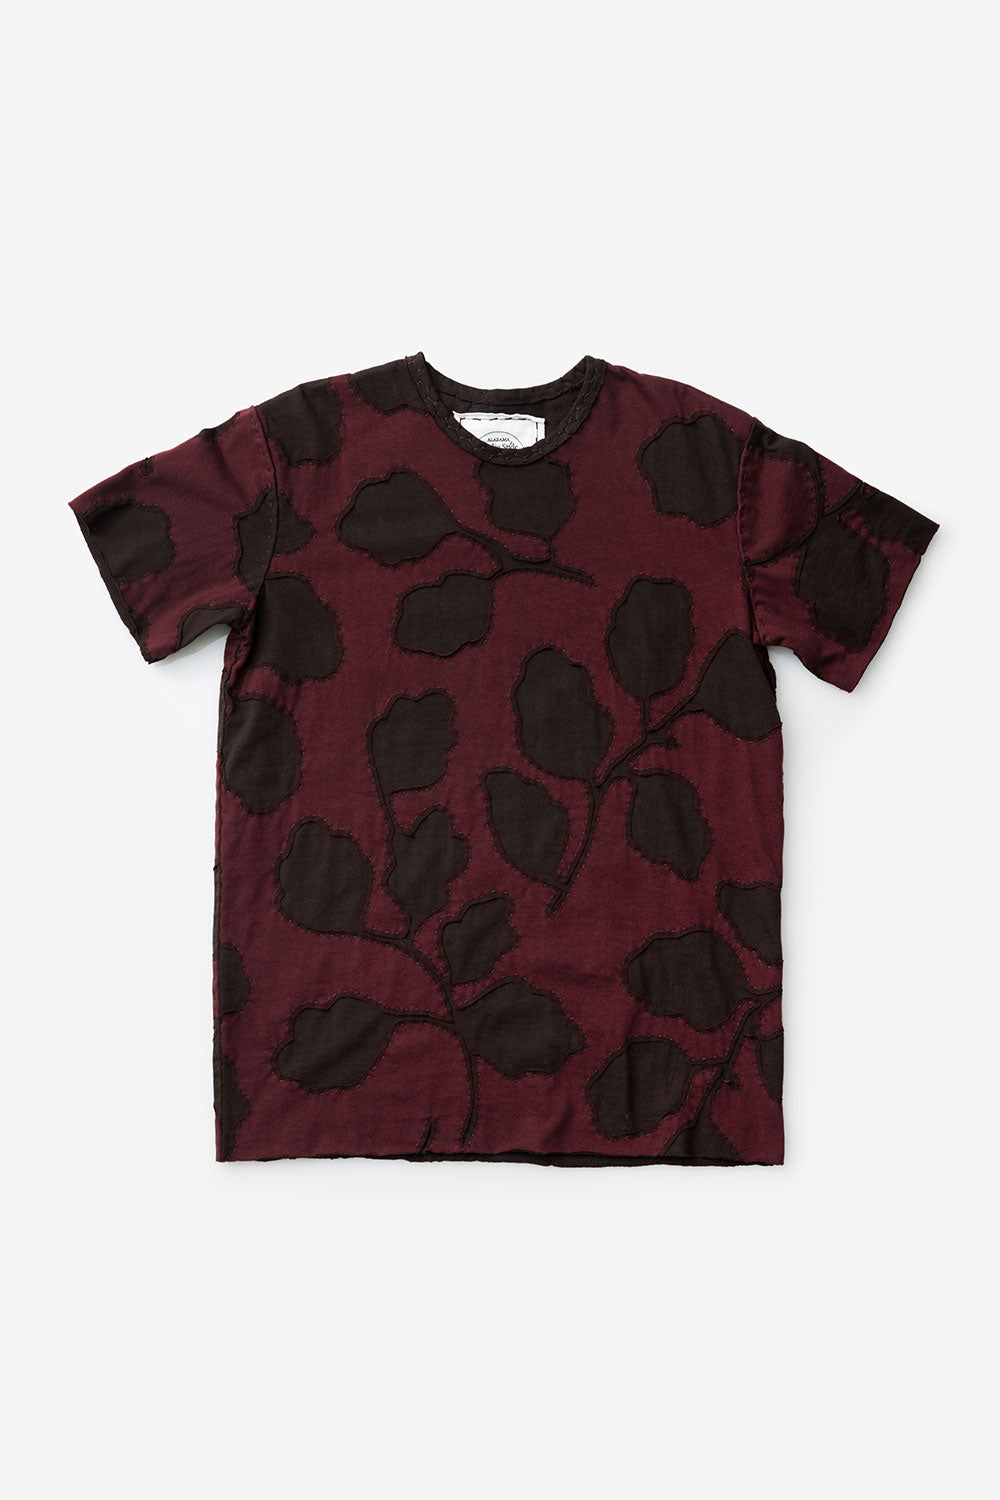 The School of Making Unisex T-Shirt Pattern Hand-Sewn Shirt for Men and Women